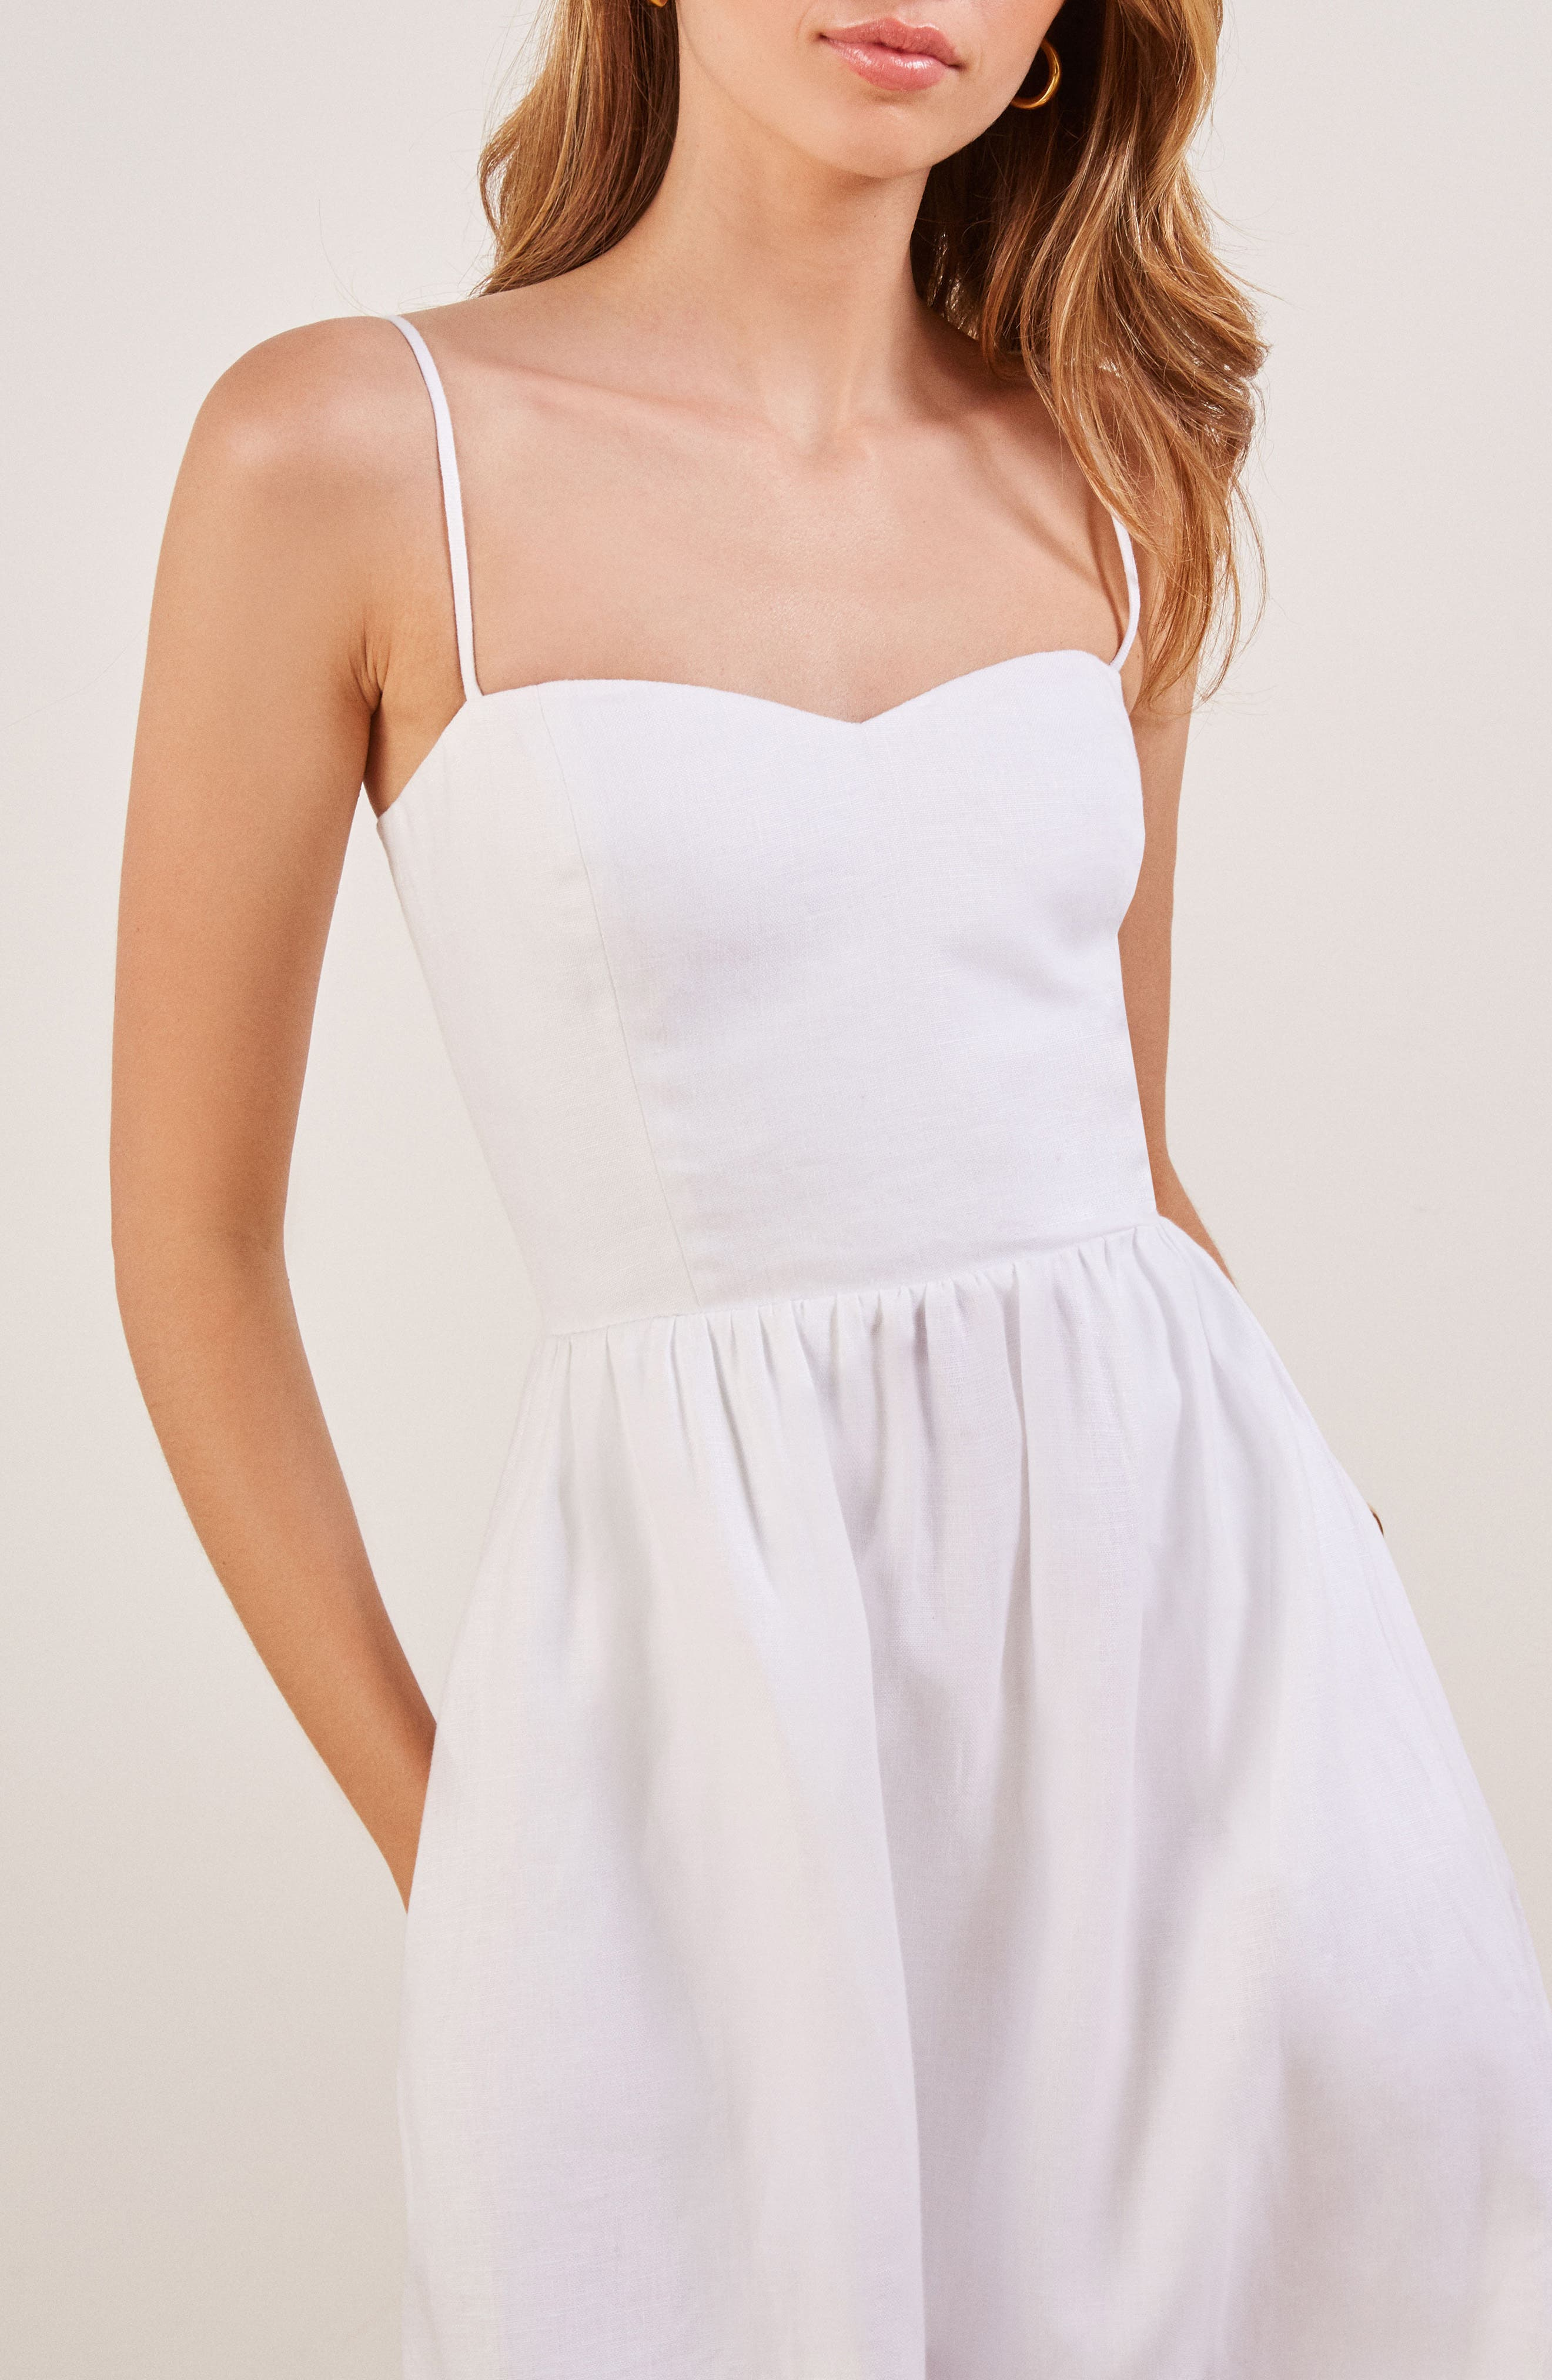 Olivia Linen Midi Dress,                             Alternate thumbnail 4, color,                             100